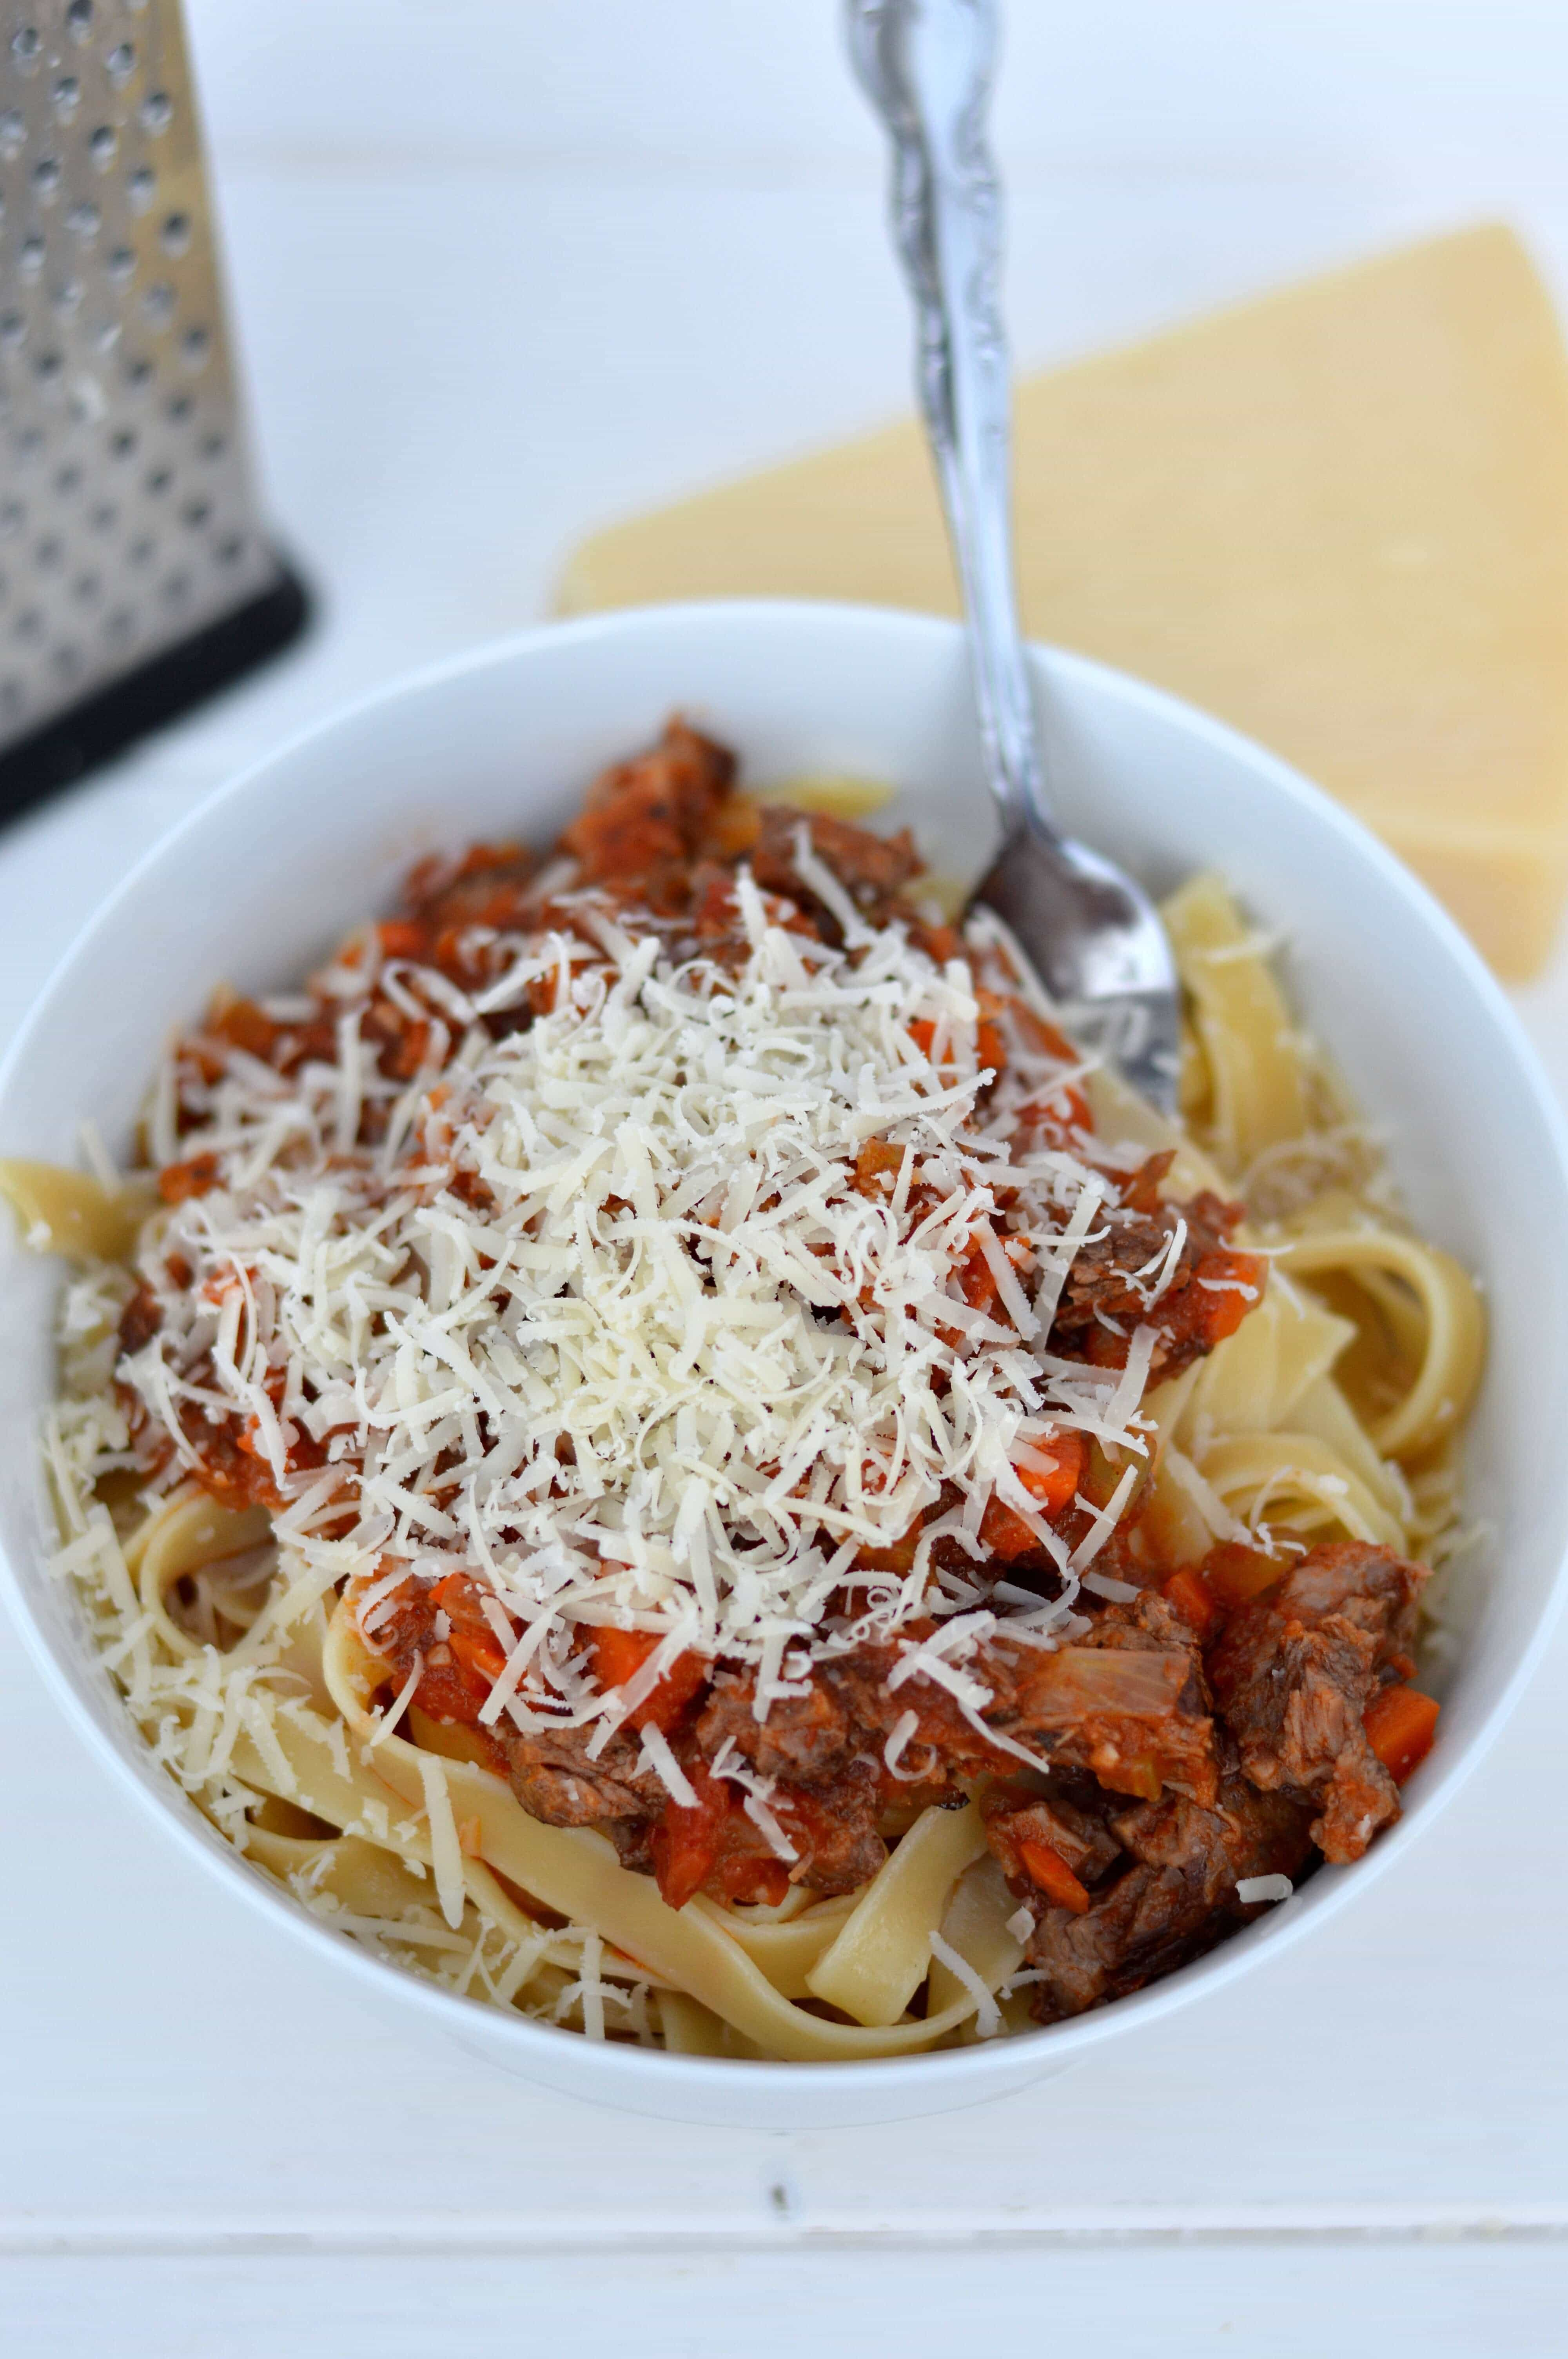 This short rib bolognese is hearty and robust, bursting with flavor from the wine, veggies and sauce.